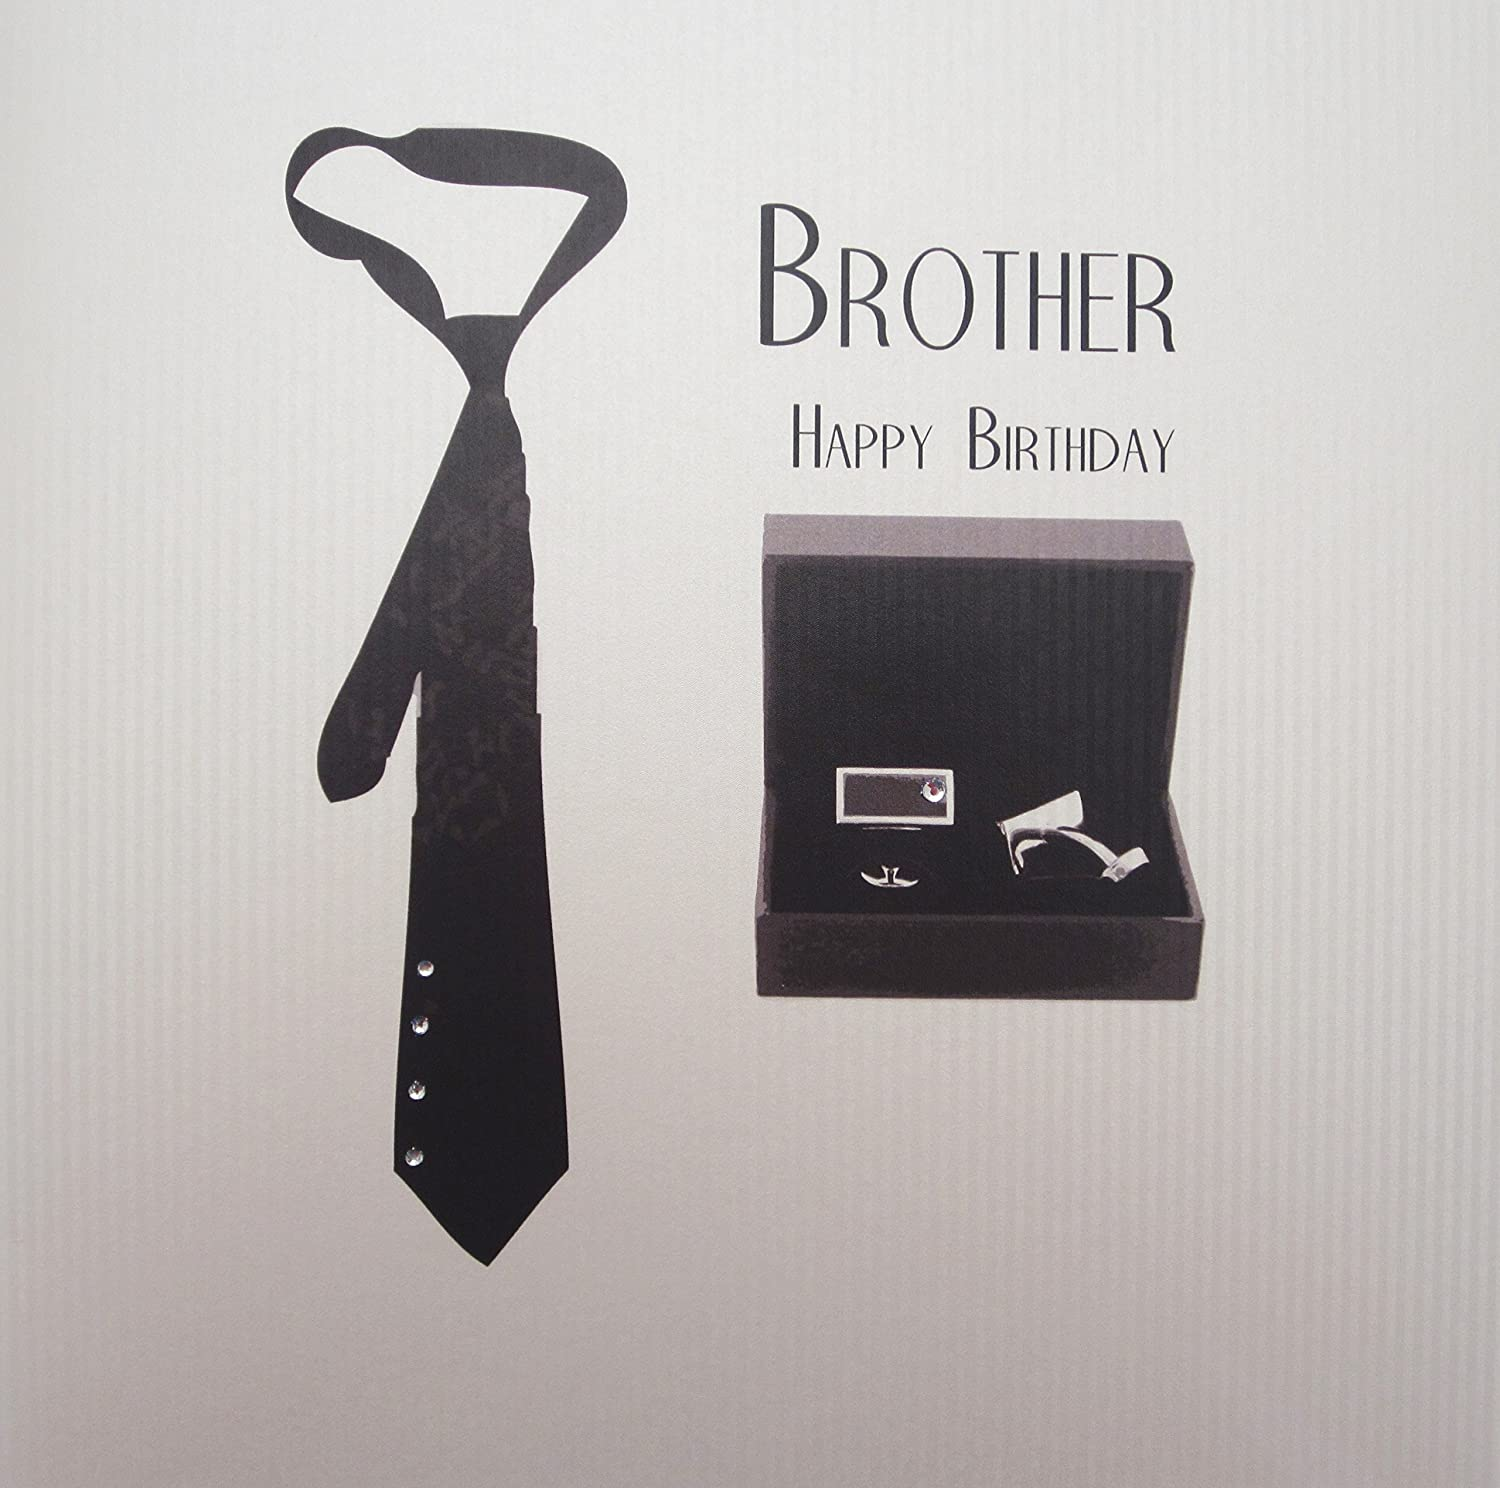 White Cotton Cards Grande Corbata y Gemelos, Brother Happy ...